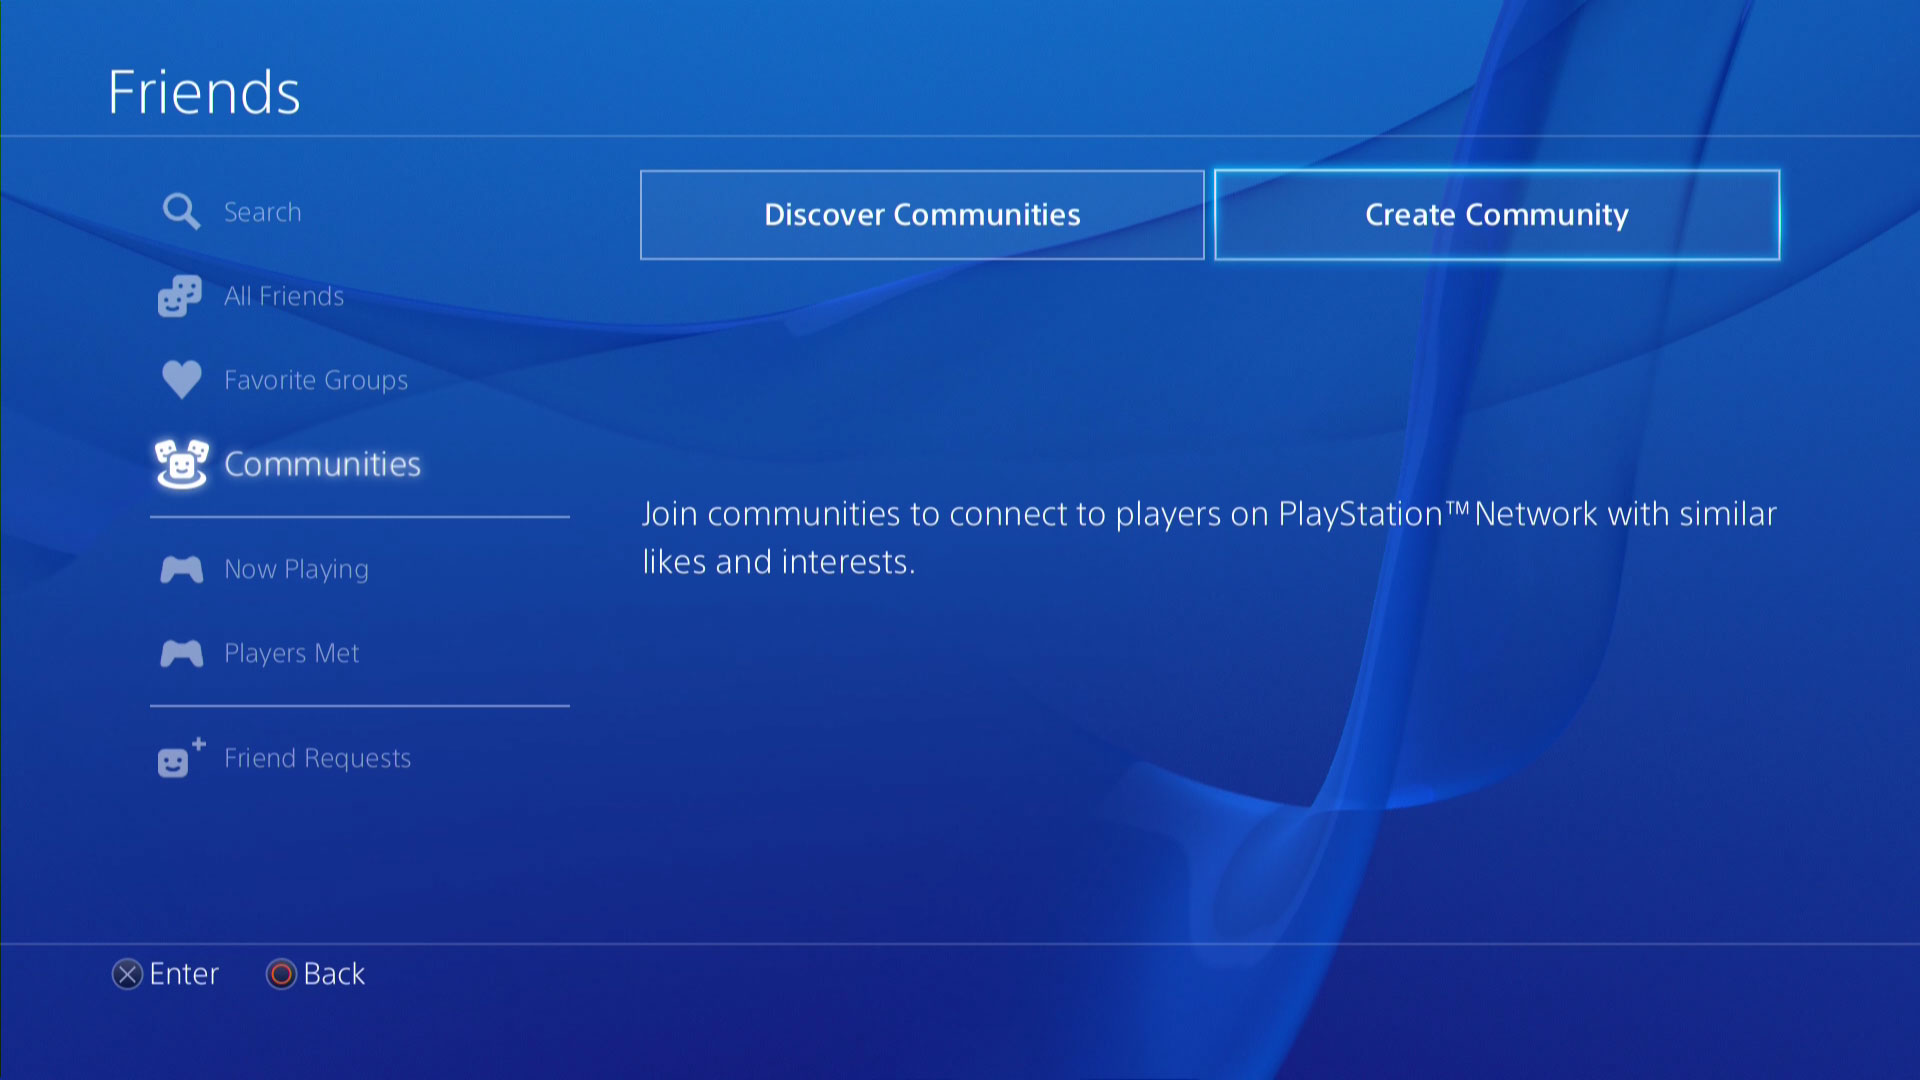 How to create PS4 Community with your own custom Logo and Background